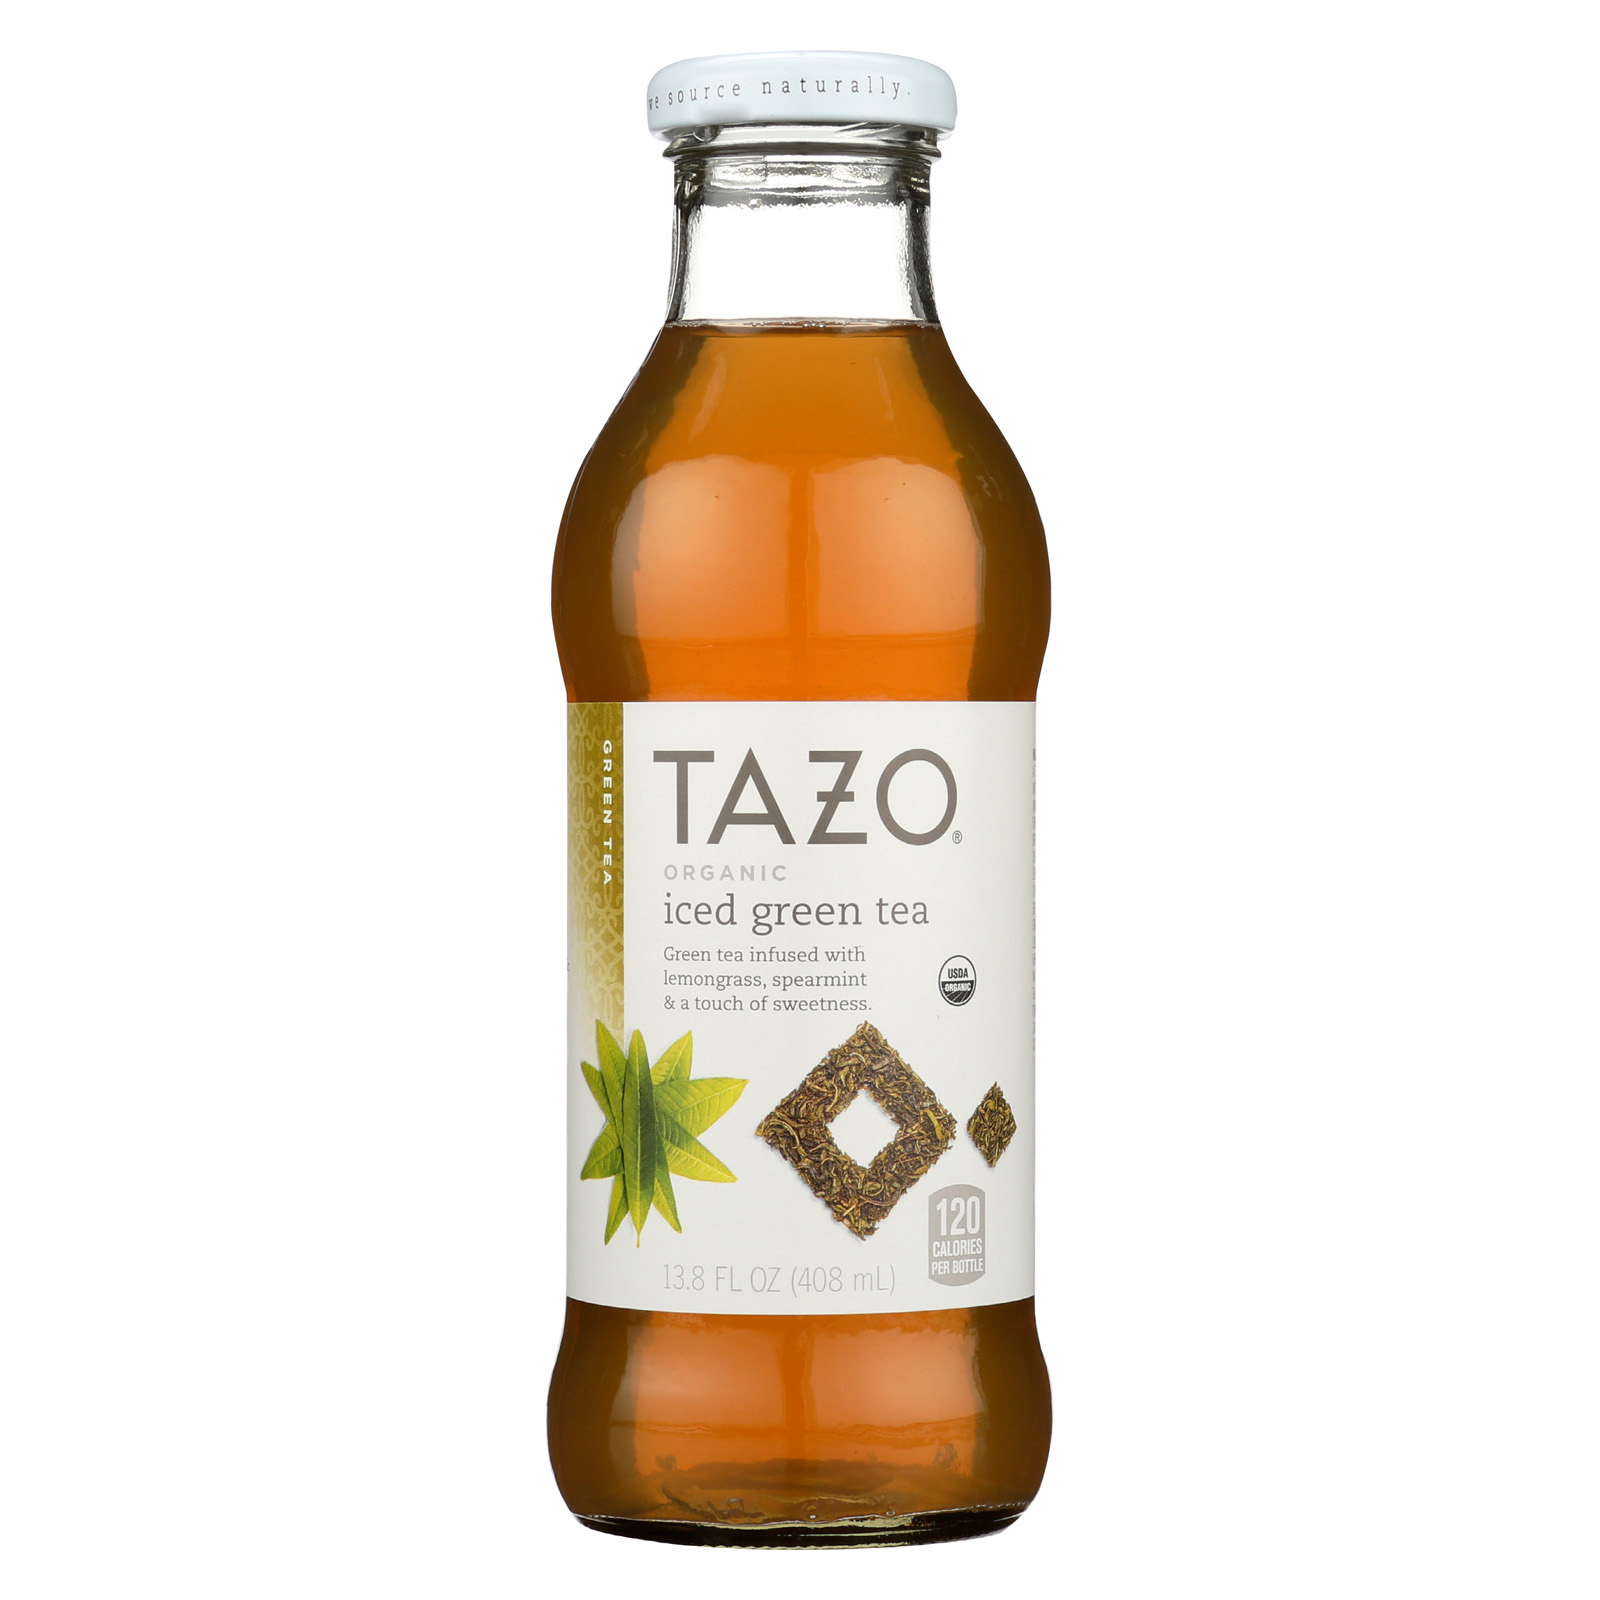 b3d3c4c062ff Details about Tazo Tea Organic Bottled Iced Tea - Green Tea - Case of 12 -  13.8 fl oz